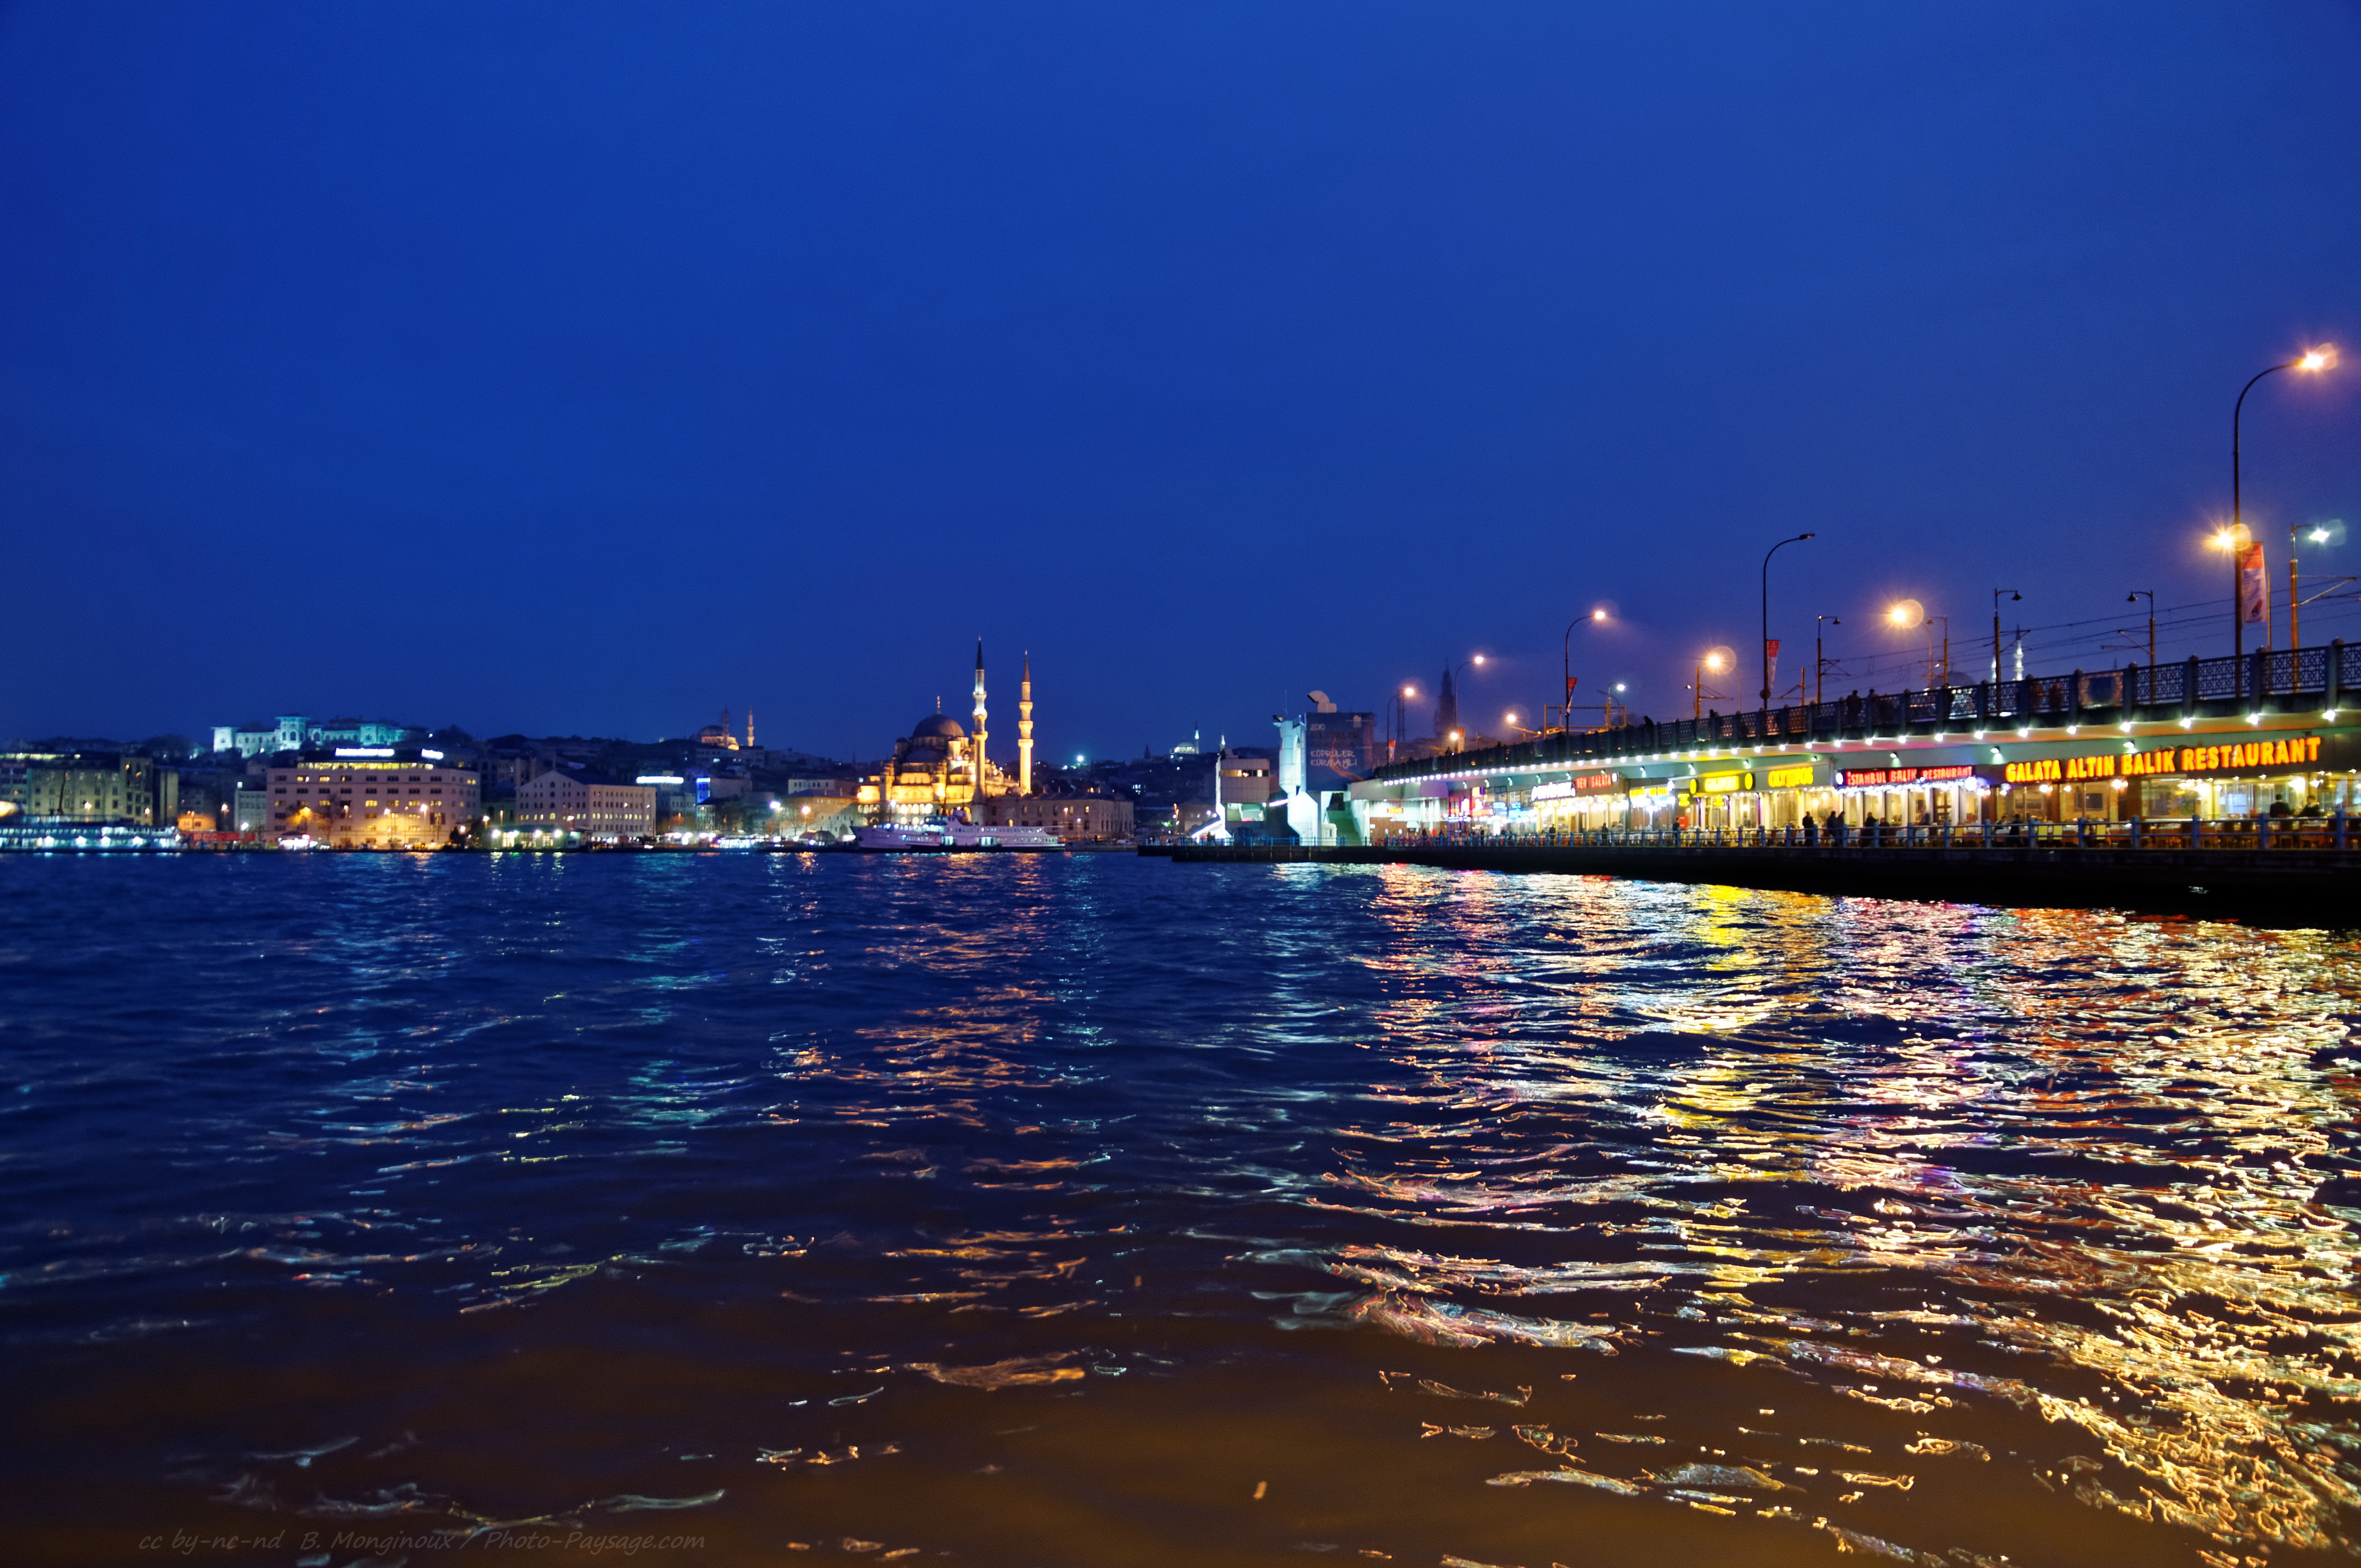 Lampadaires Le Pont De Galata Istanbul By Night 1